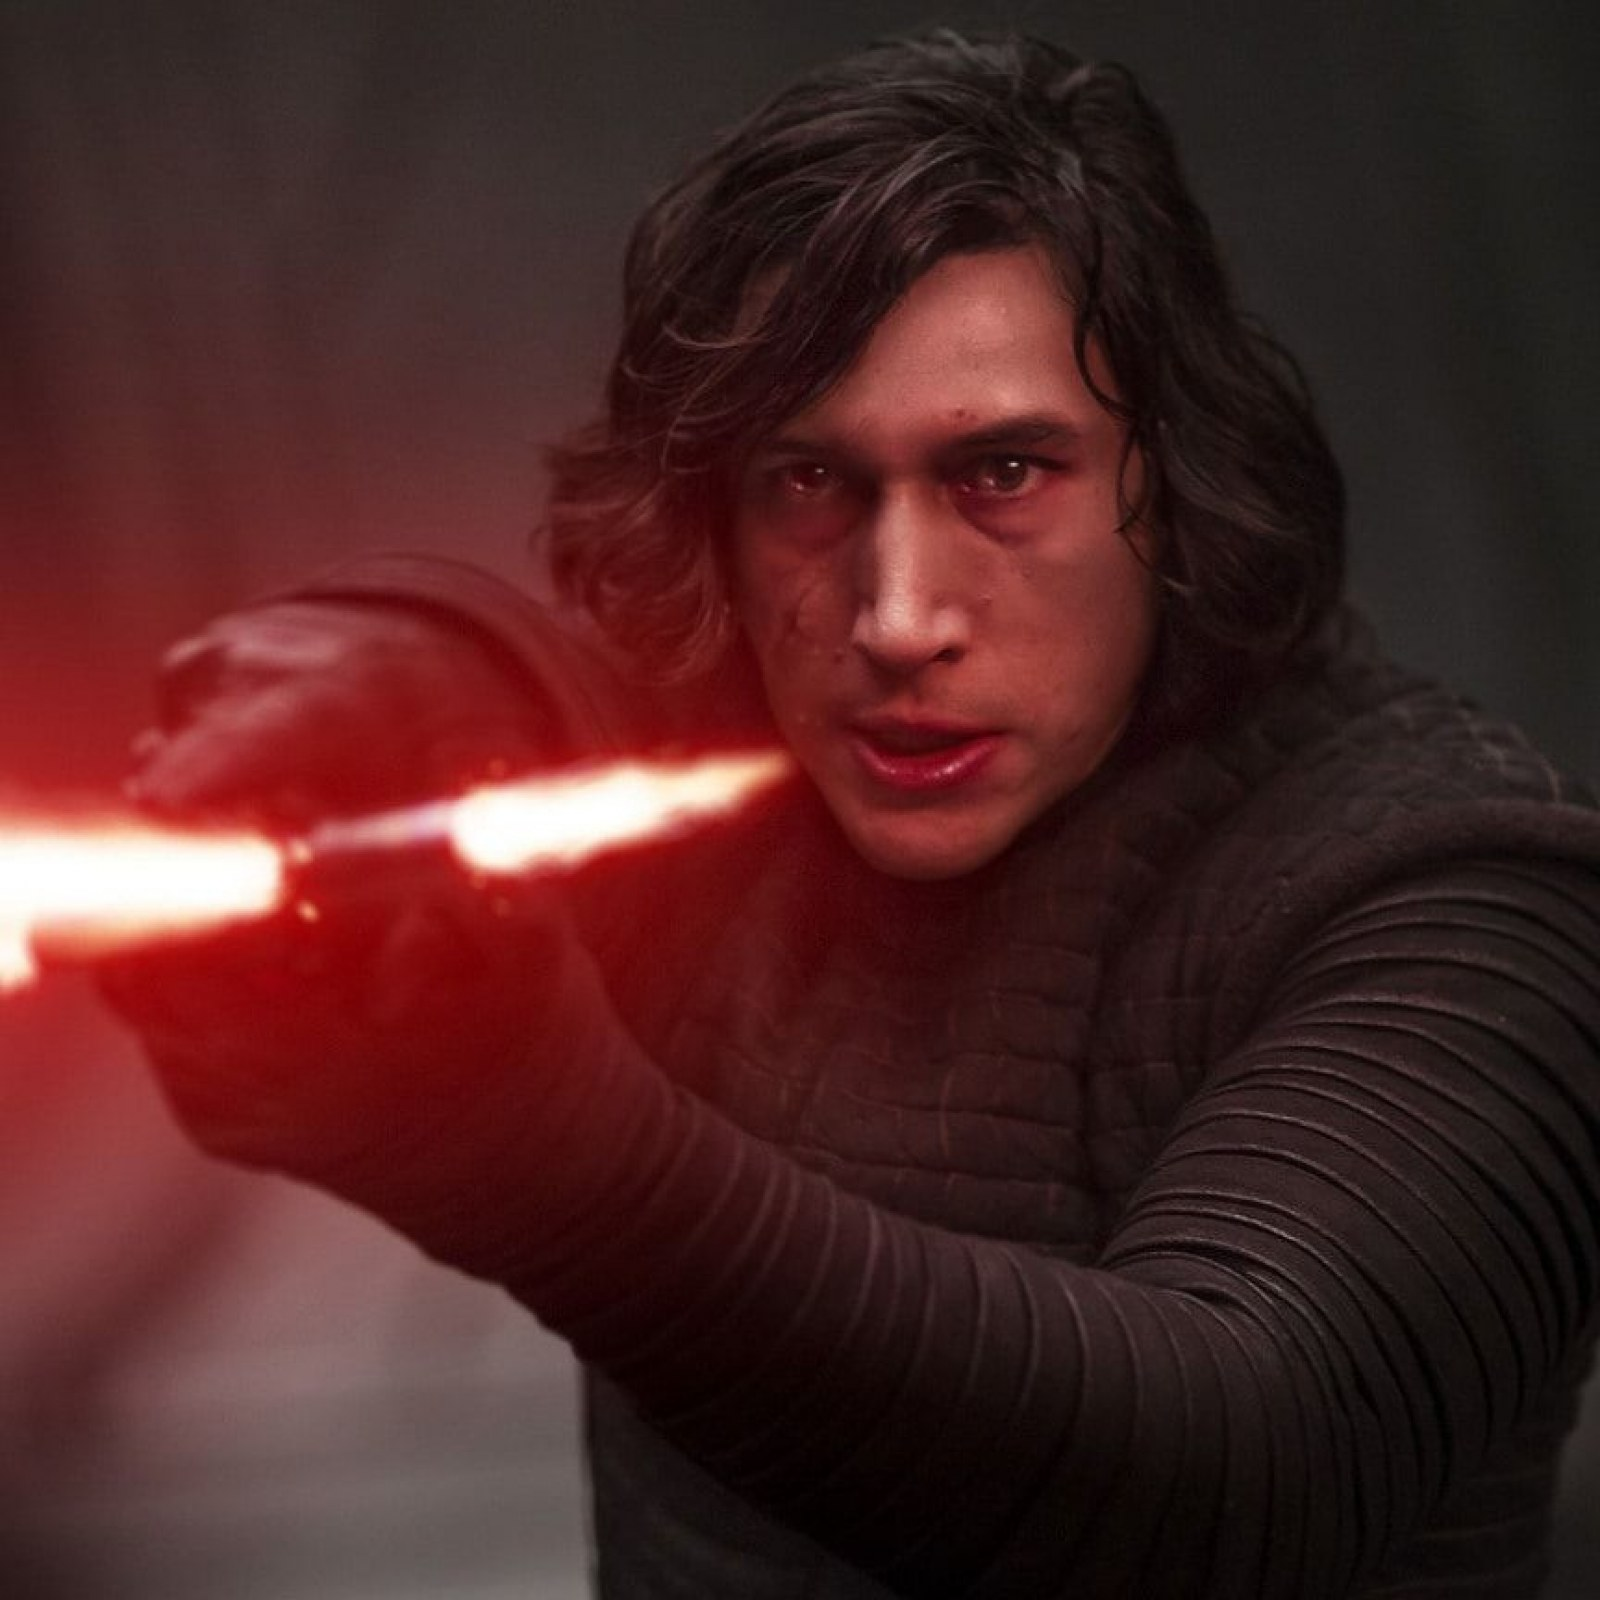 star-wars-episode-ix-trailer-kylo-ren.jp